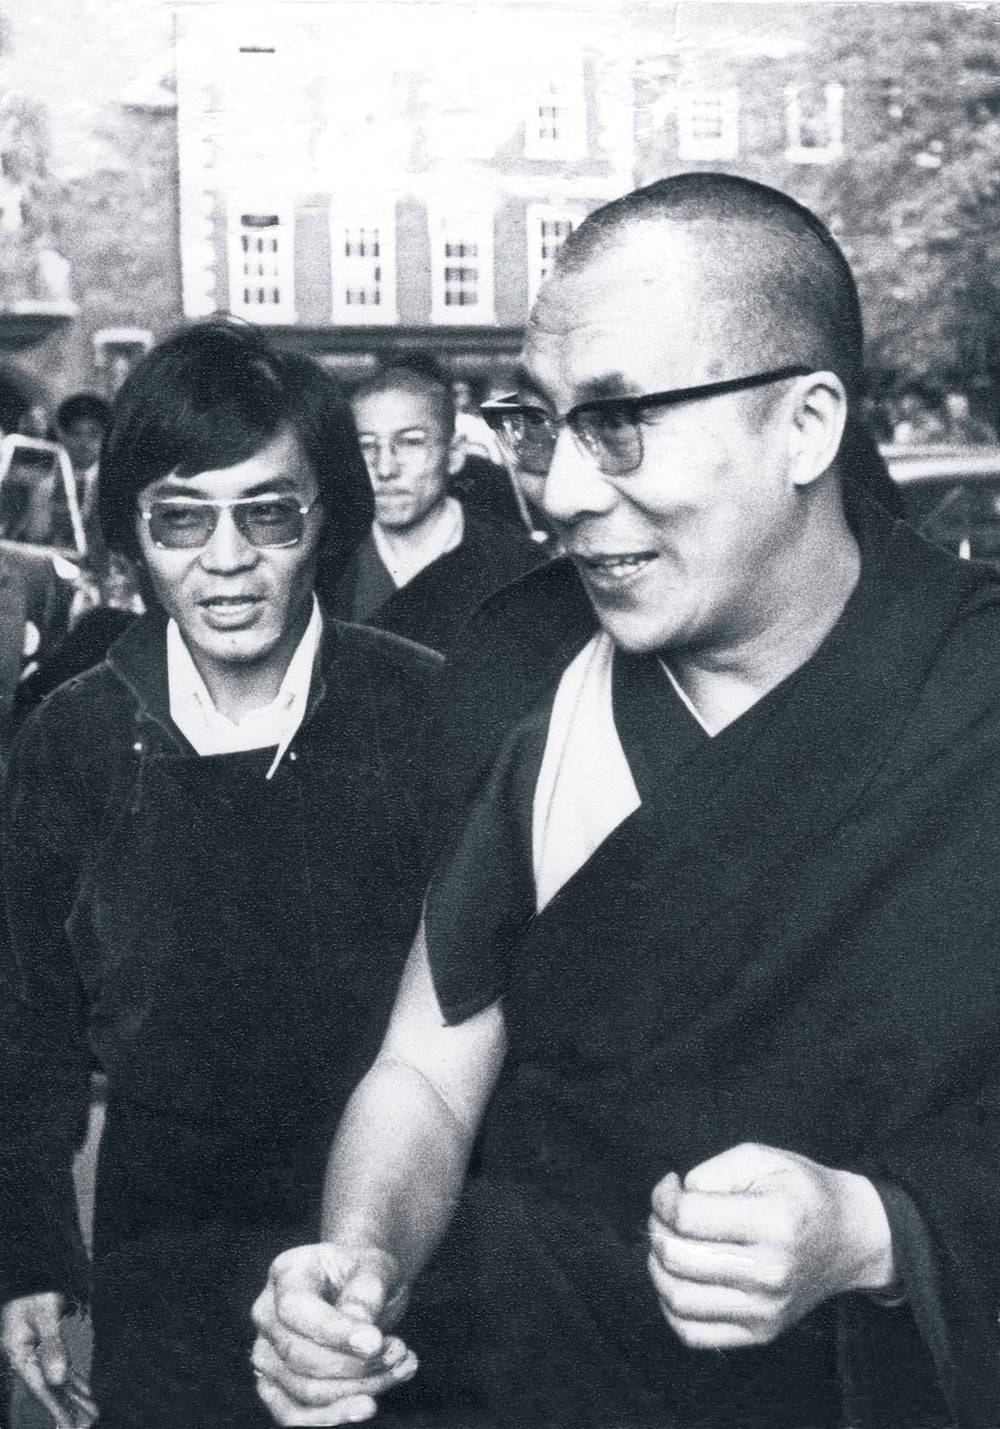 Sogyal Rinpoche (left) helped organise His Holiness the Dalai Lama's first visit to the west in 1973